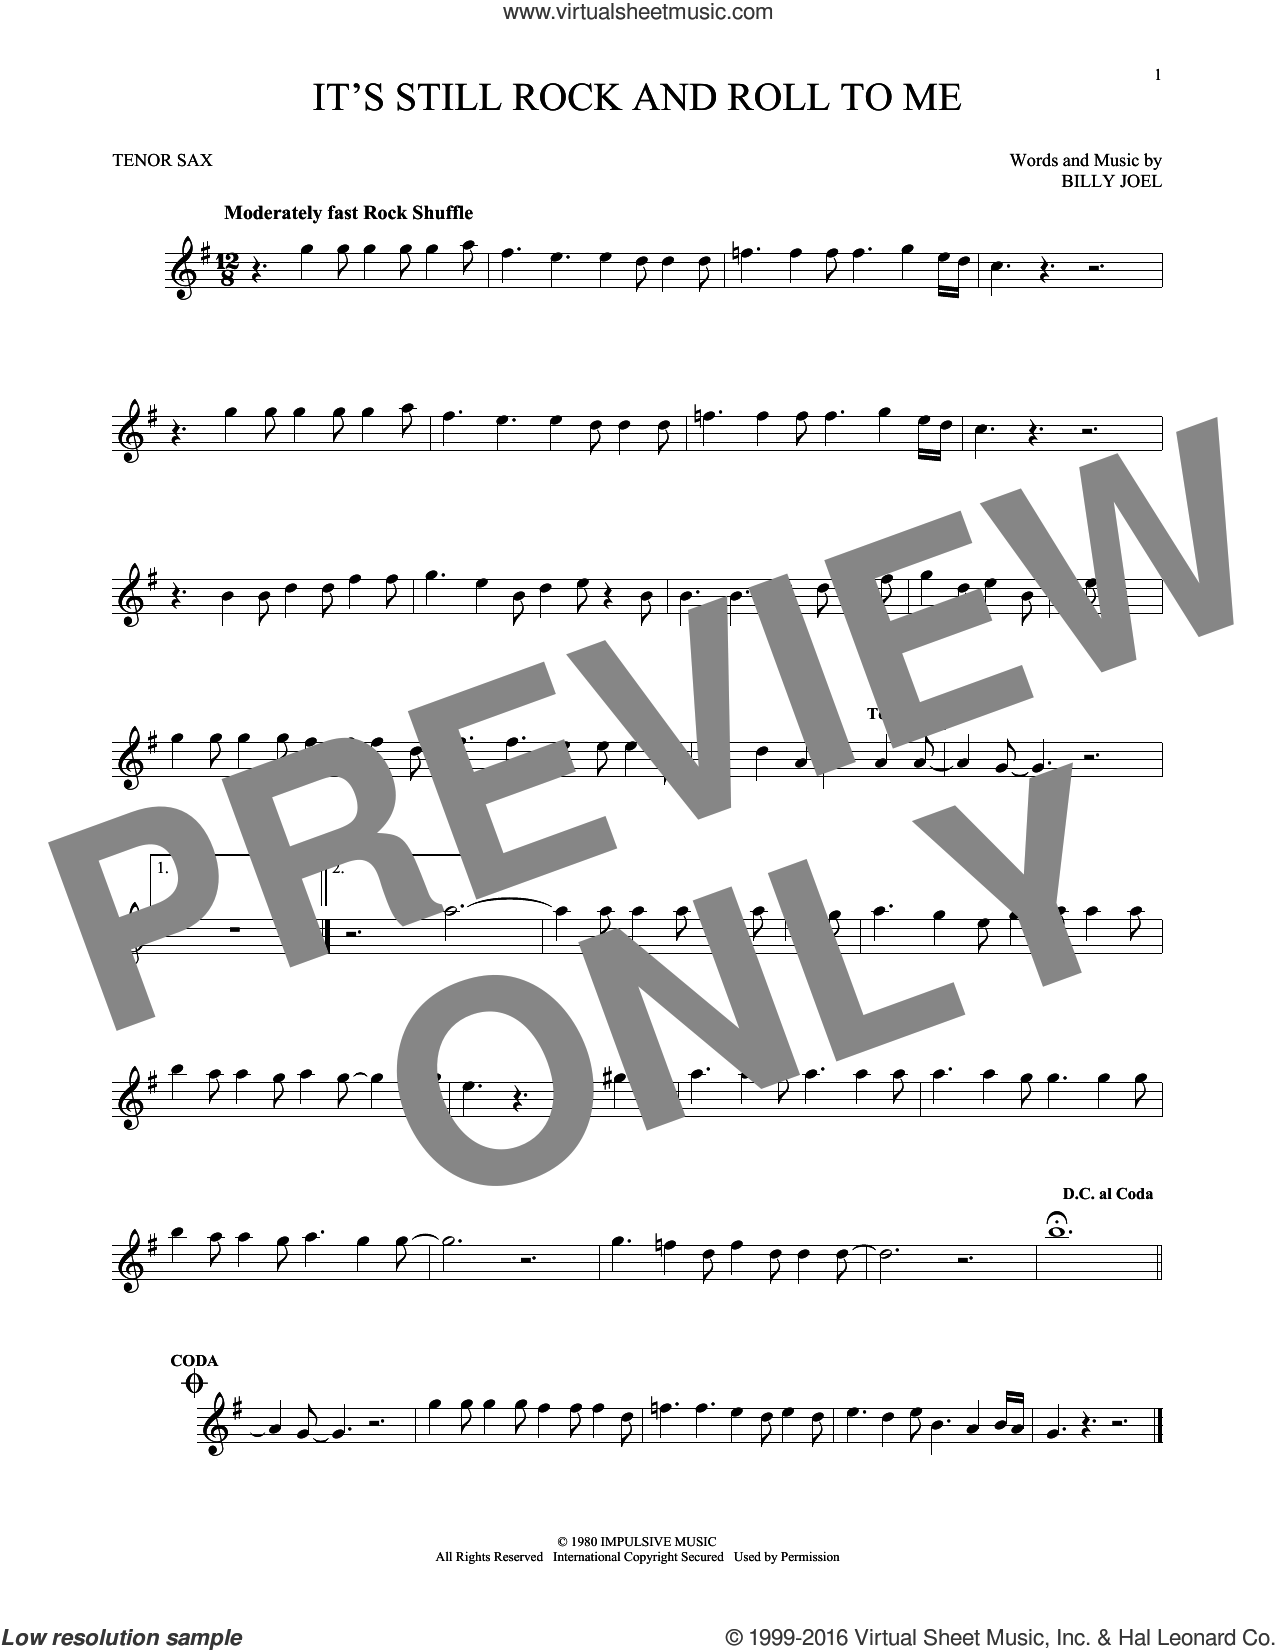 It's Still Rock And Roll To Me sheet music for tenor saxophone solo by Billy Joel. Score Image Preview.